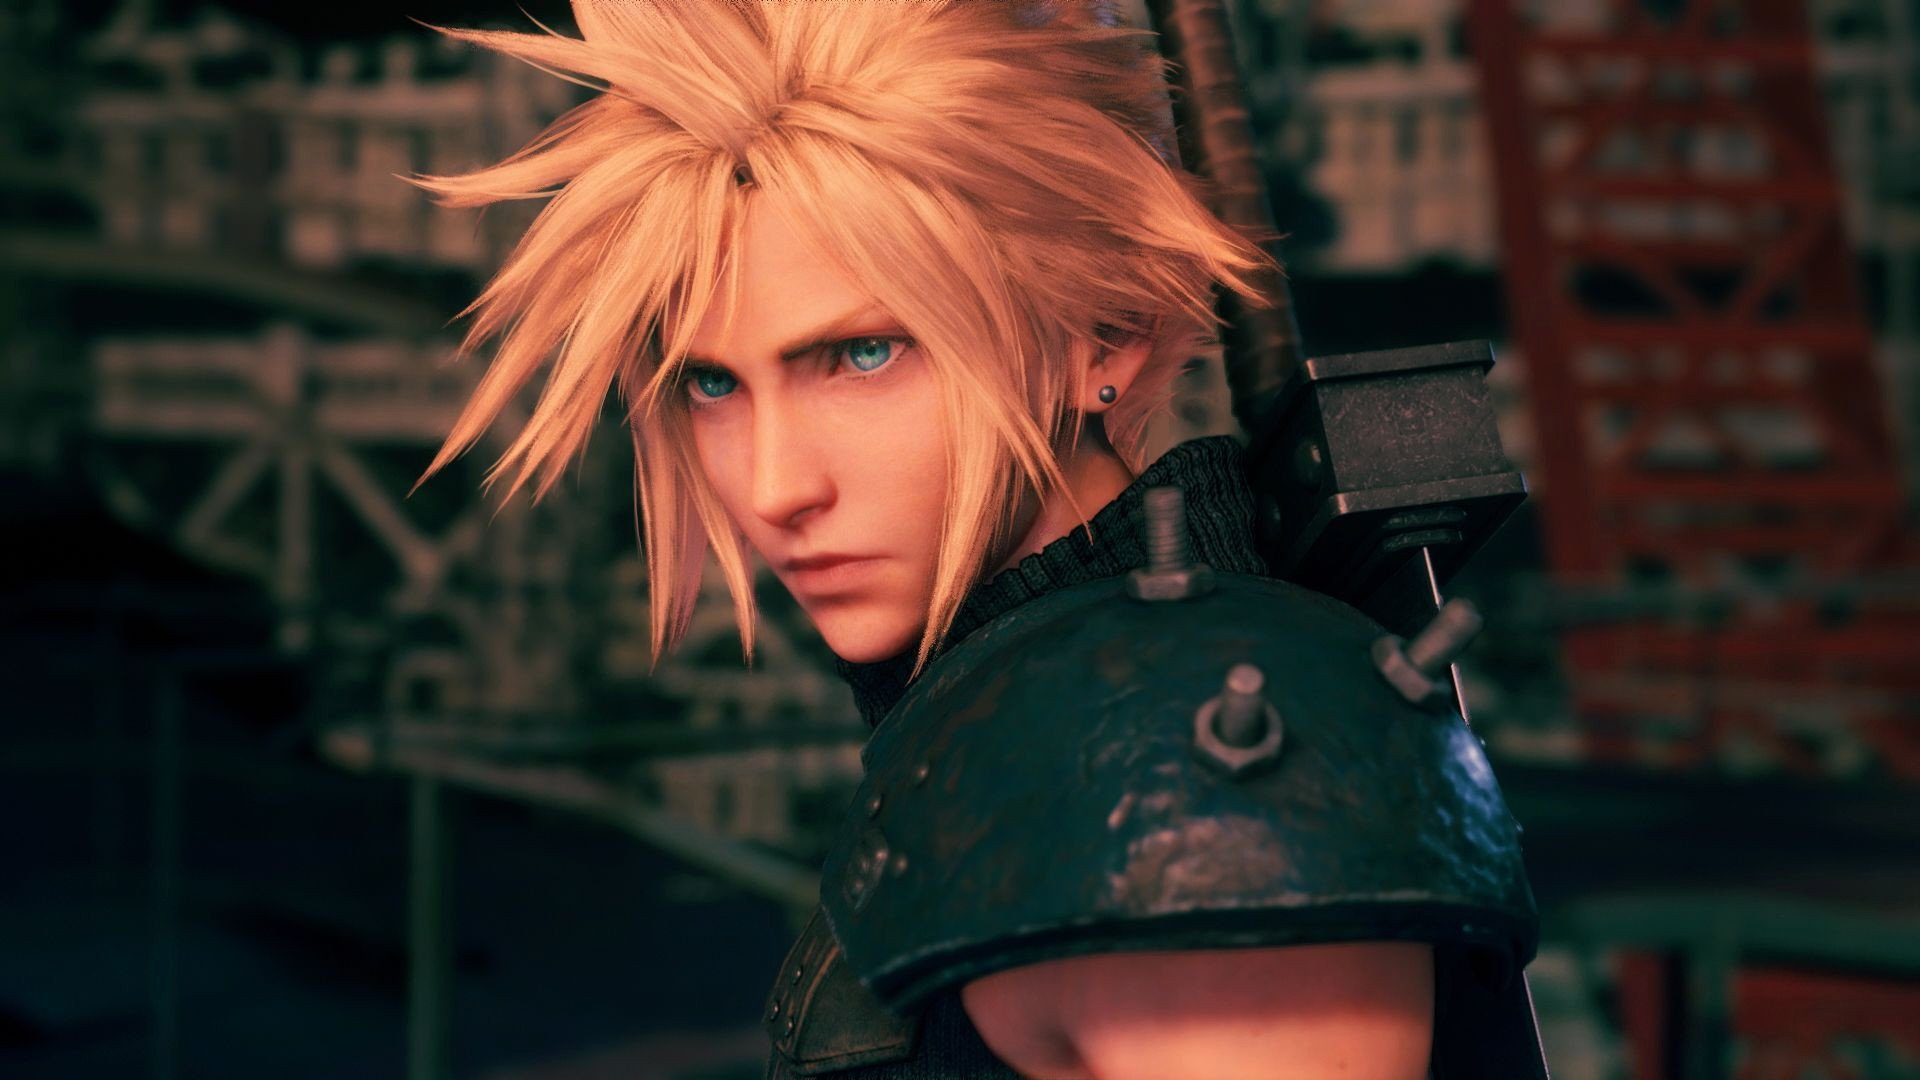 A screenshot from Final Fantasy VII Remake